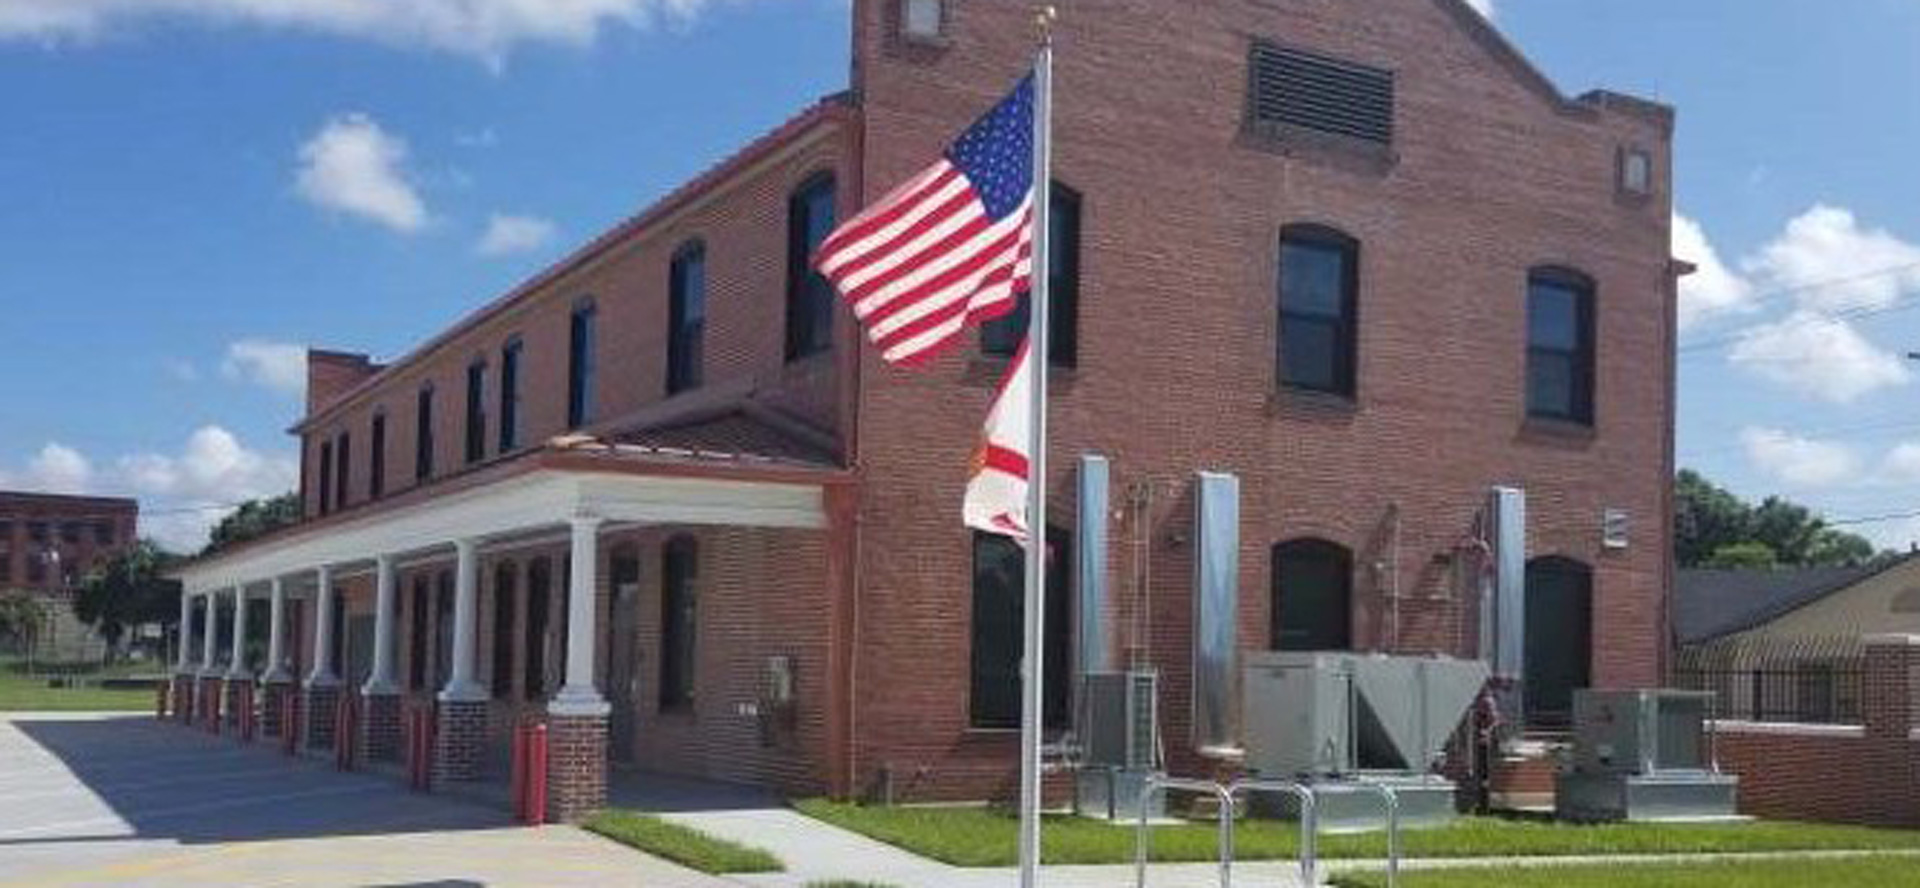 National Guard Armory with american flag outside